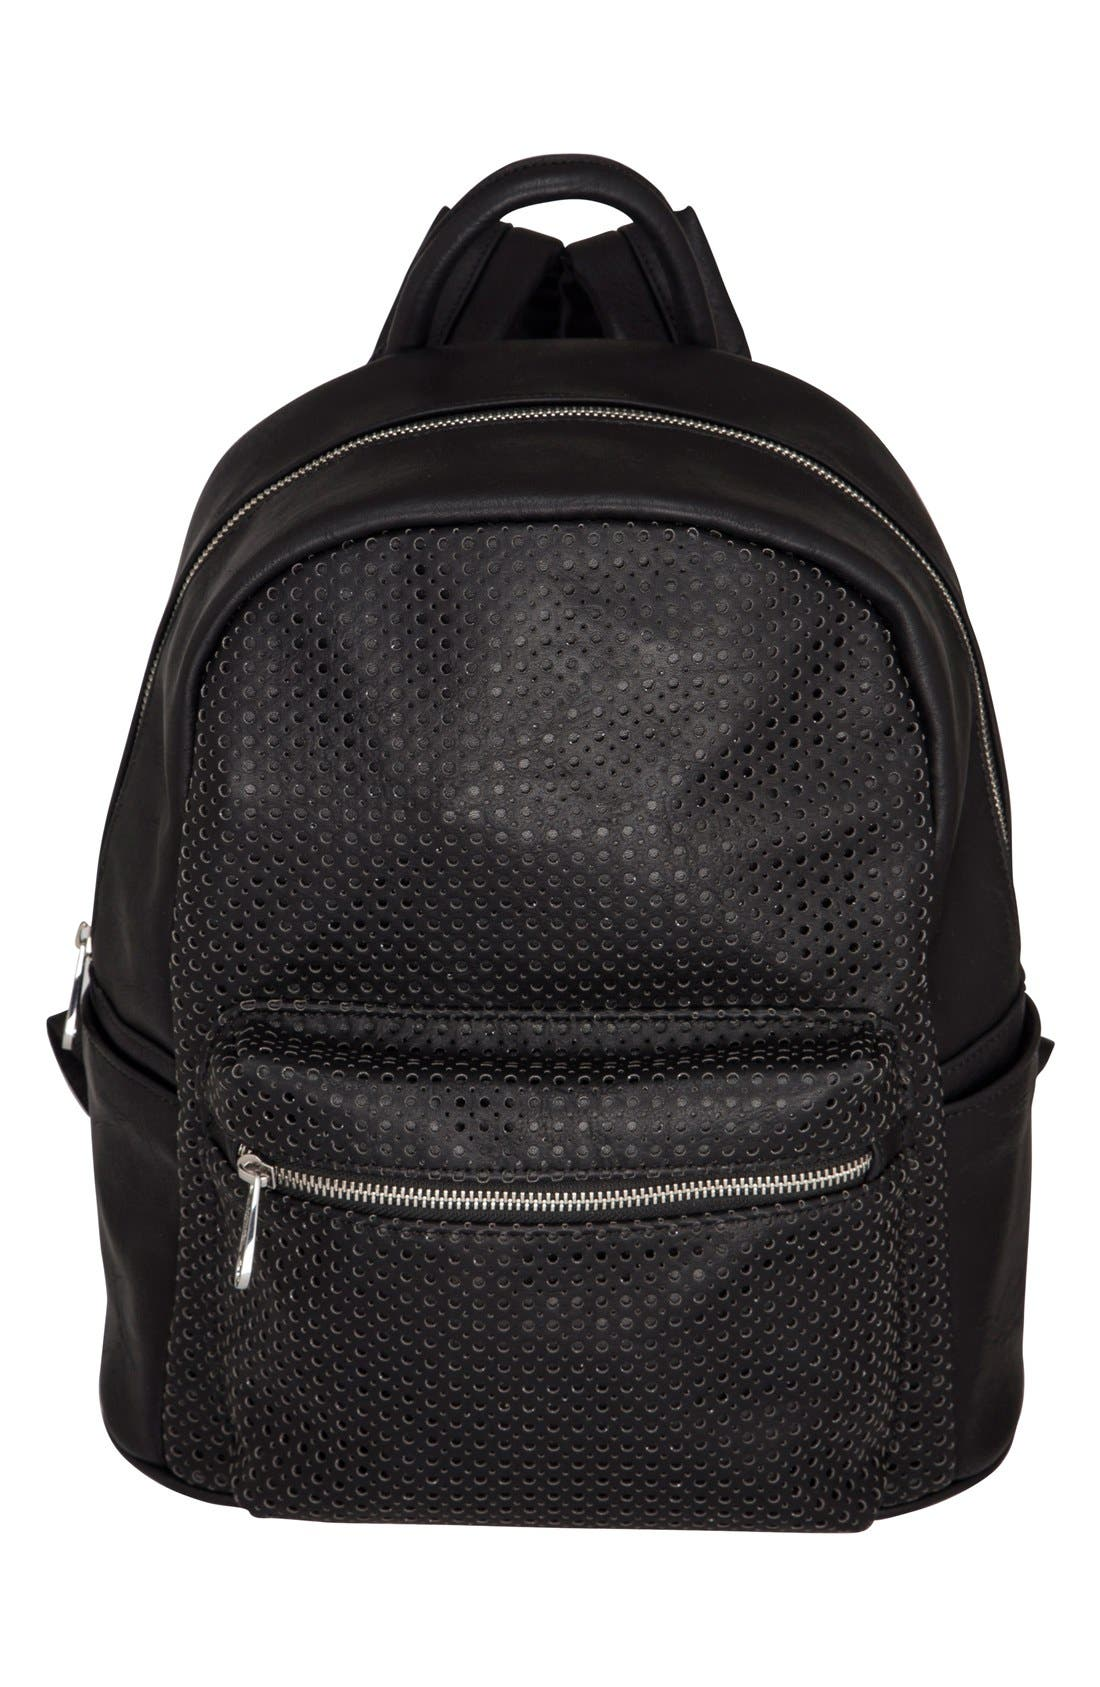 Alternate Image 1 Selected - Urban Originals 'Lola' Perforated Vegan Leather Backpack